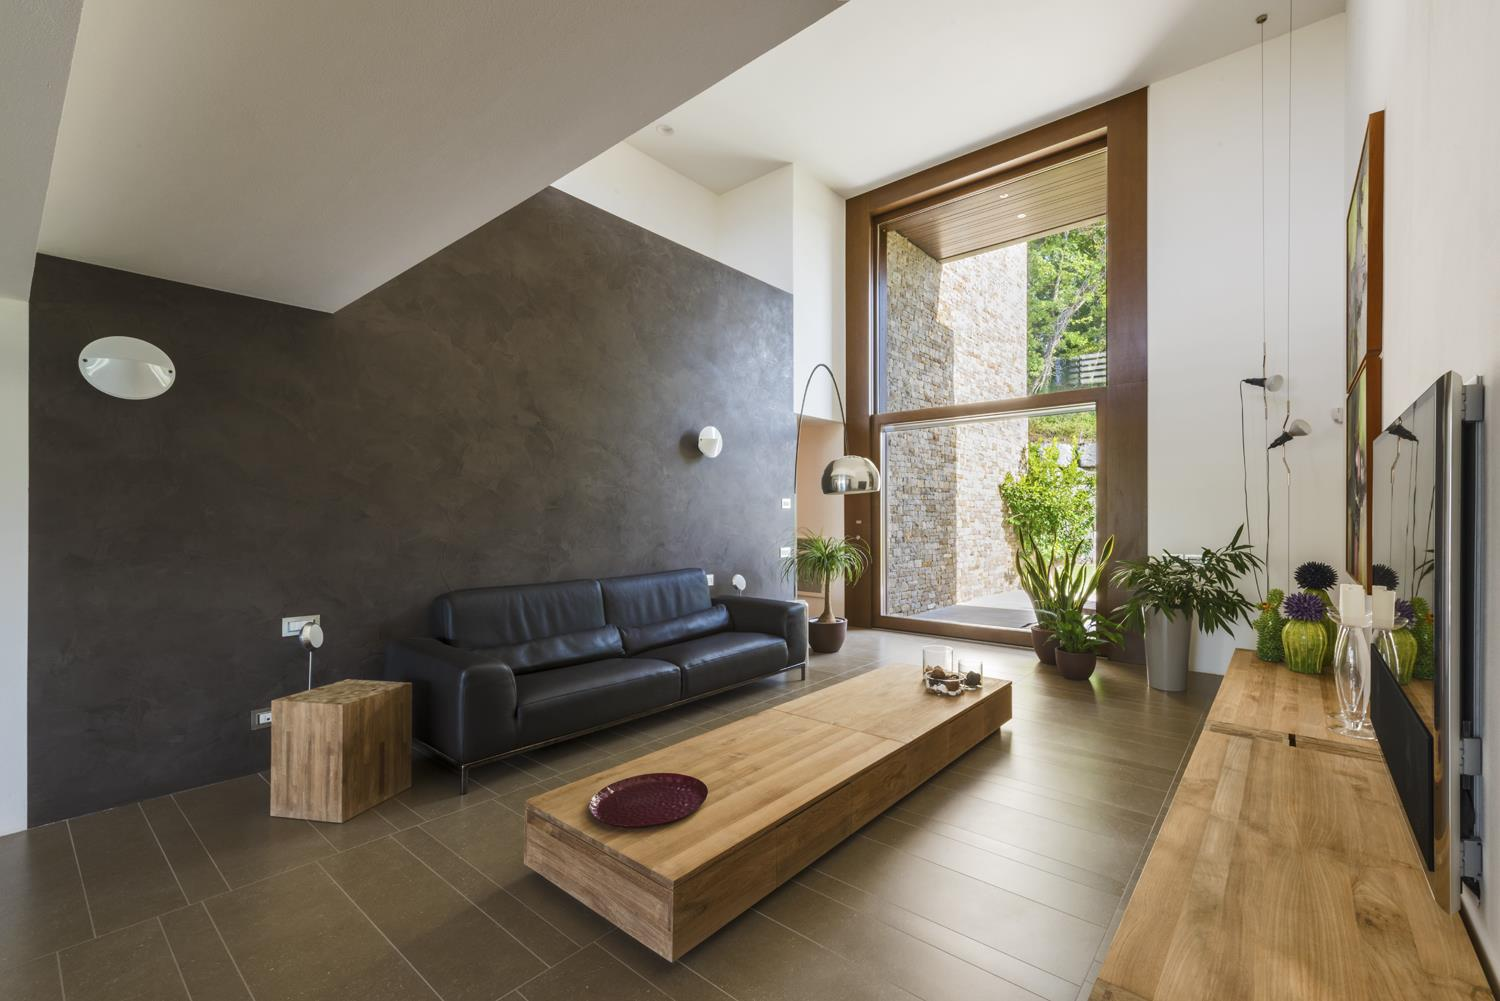 Private house: Photo 10